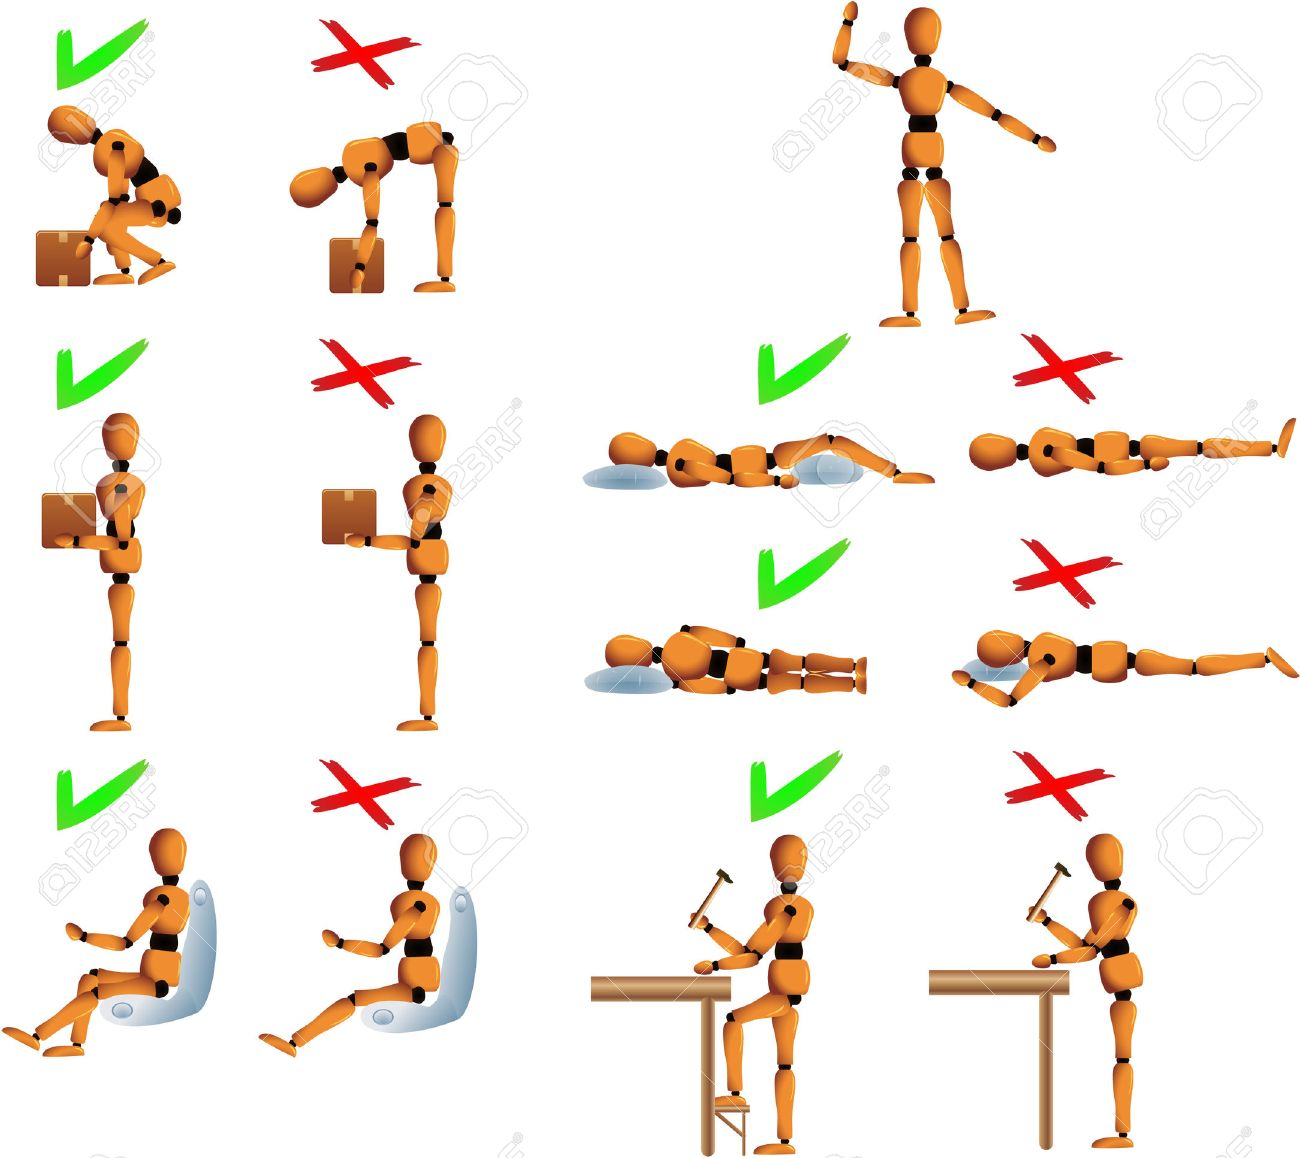 Several position with do's and don't for the back and spine care. Woody the mannequin explains it using examples. It explains how to carry objects, drive, work and sleep in order to avoid back problems. Linear and radial gradients used. Woody's arms, legs Stock Vector - 5277363